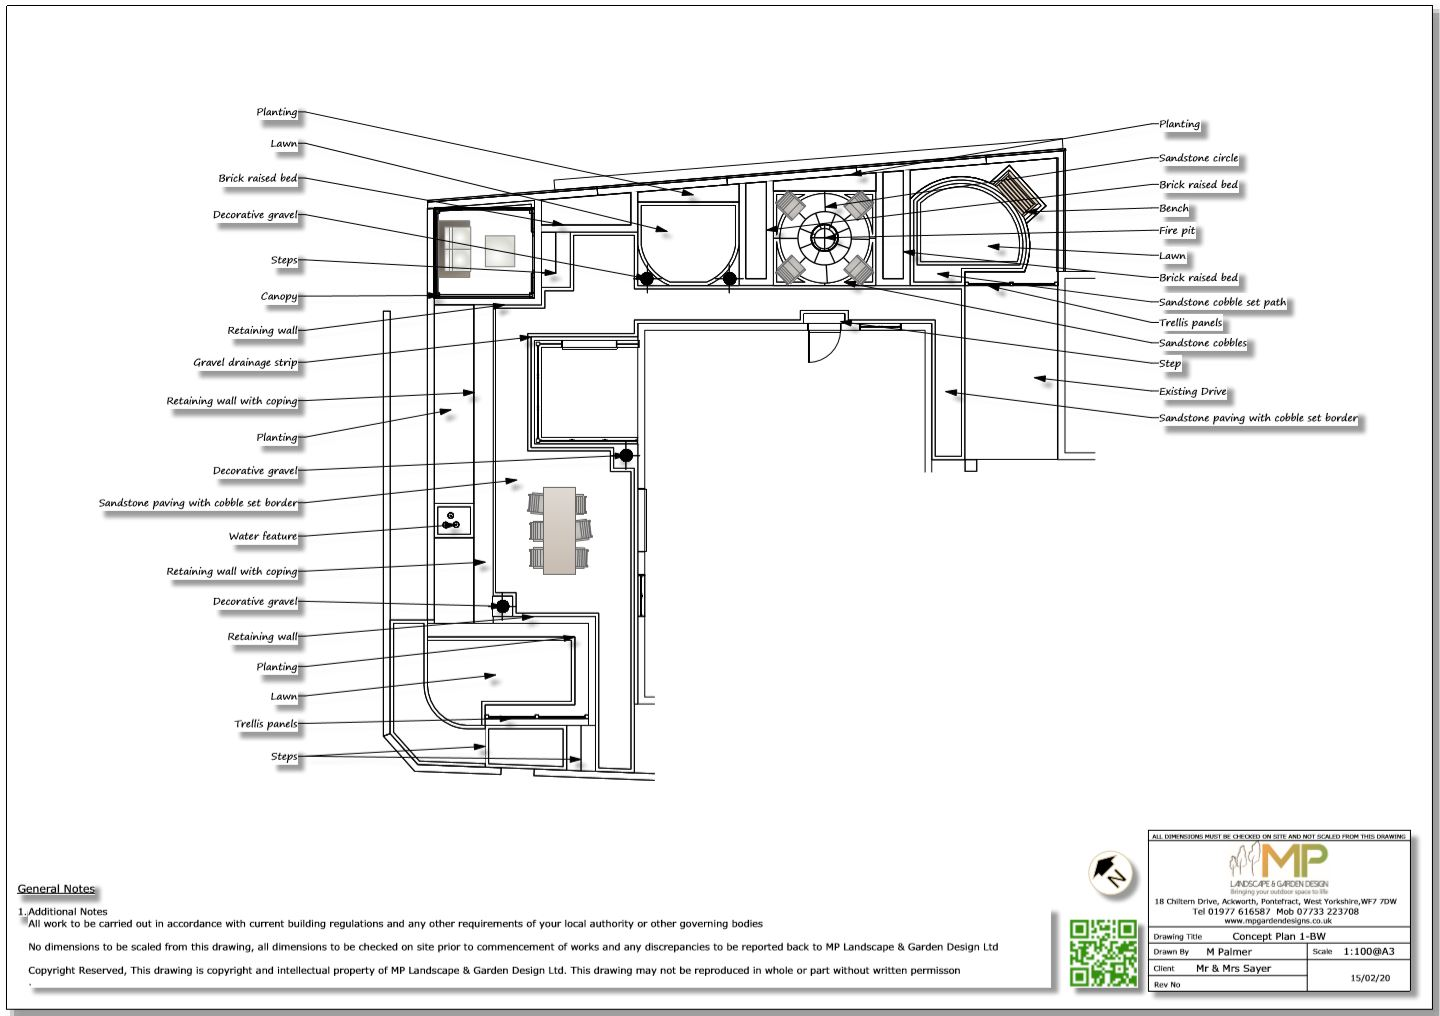 2. Concept plan for a property in Castelford.